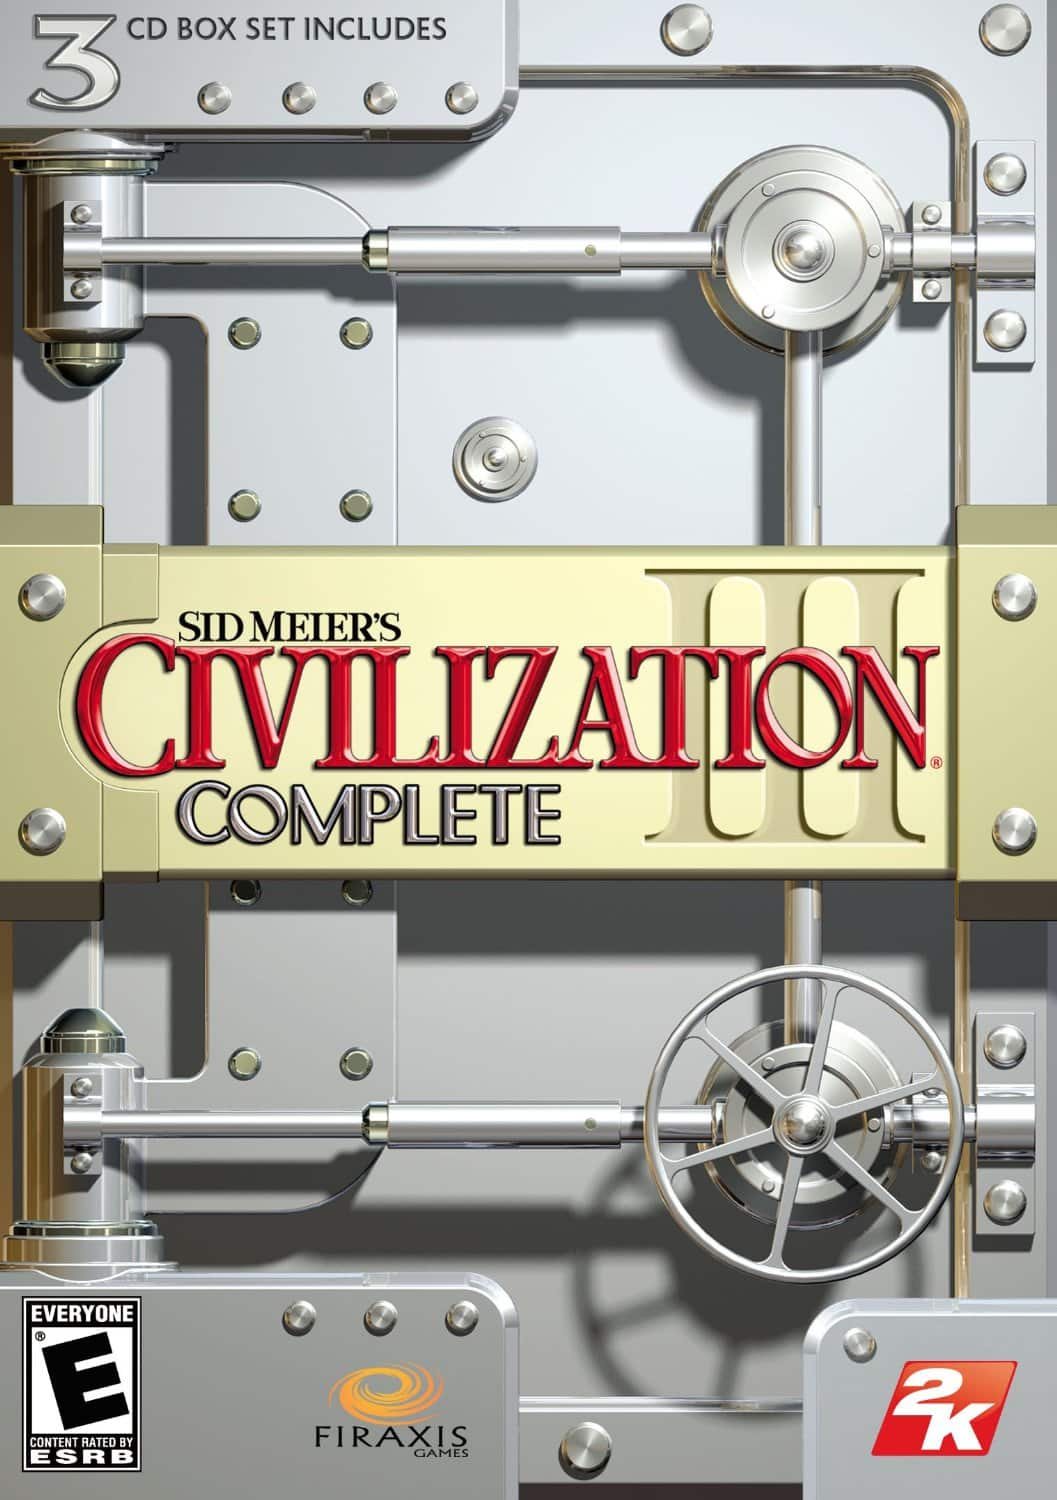 Sid Meier's Civilization III: Complete (PC Digital Code) $0.99 via Amazon *Steam*